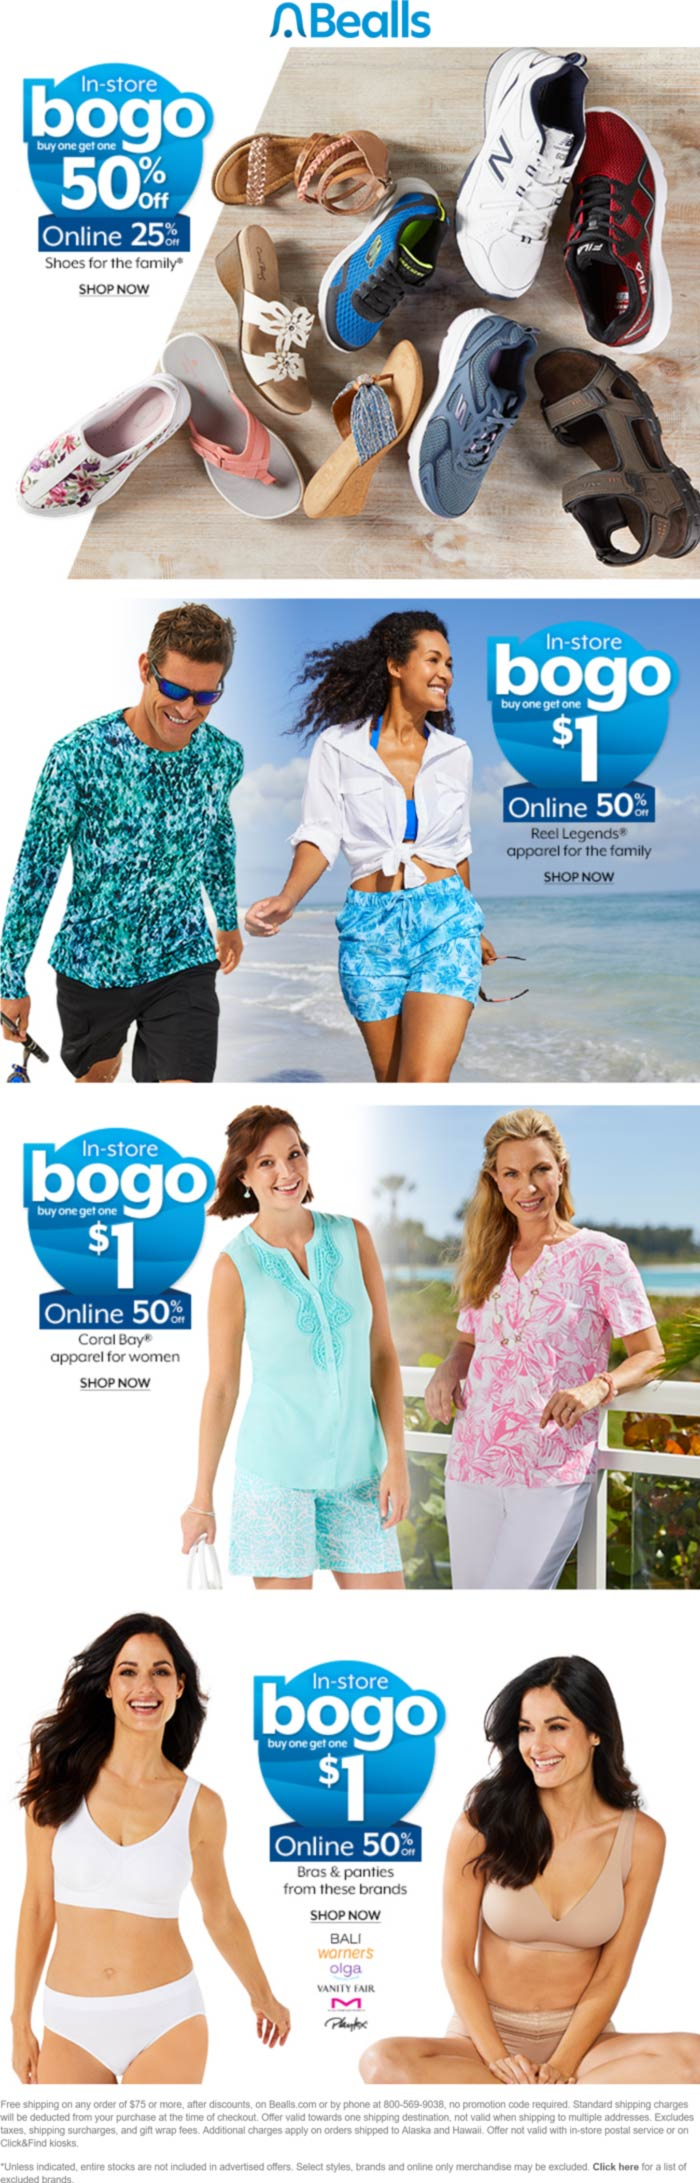 Bealls stores Coupon  Second item for $1 or 50% off today at Bealls, ditto online #bealls